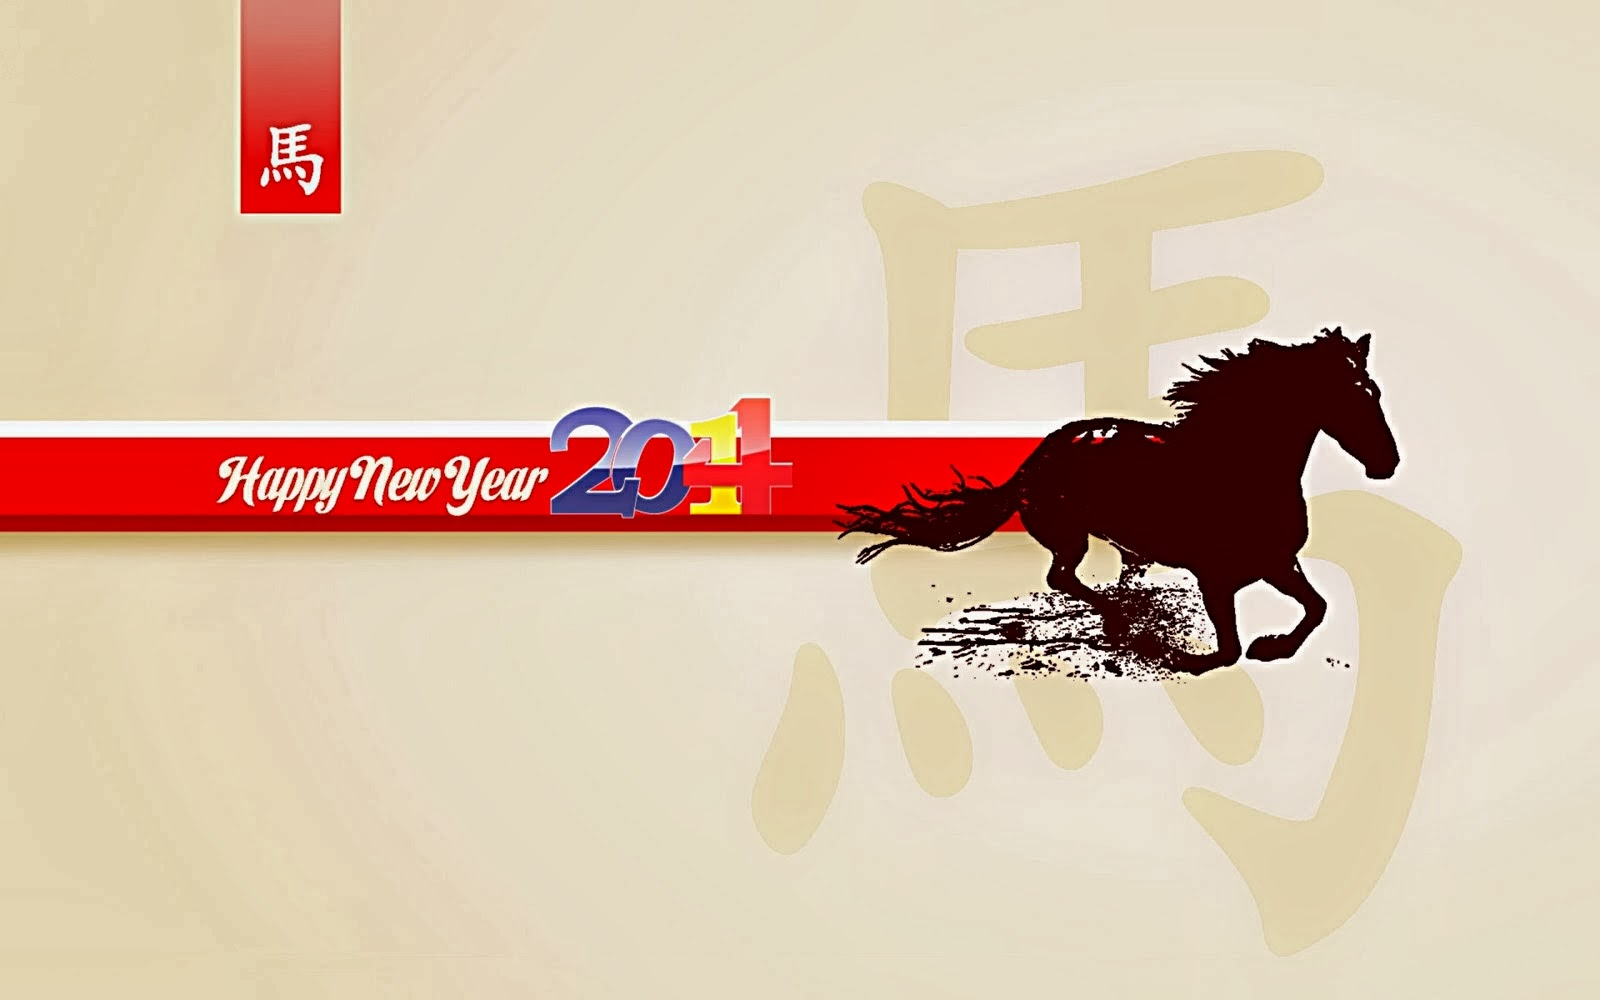 Happy Chinese New Year 2014.7 Lunar Chinese New Year Card Design 2014